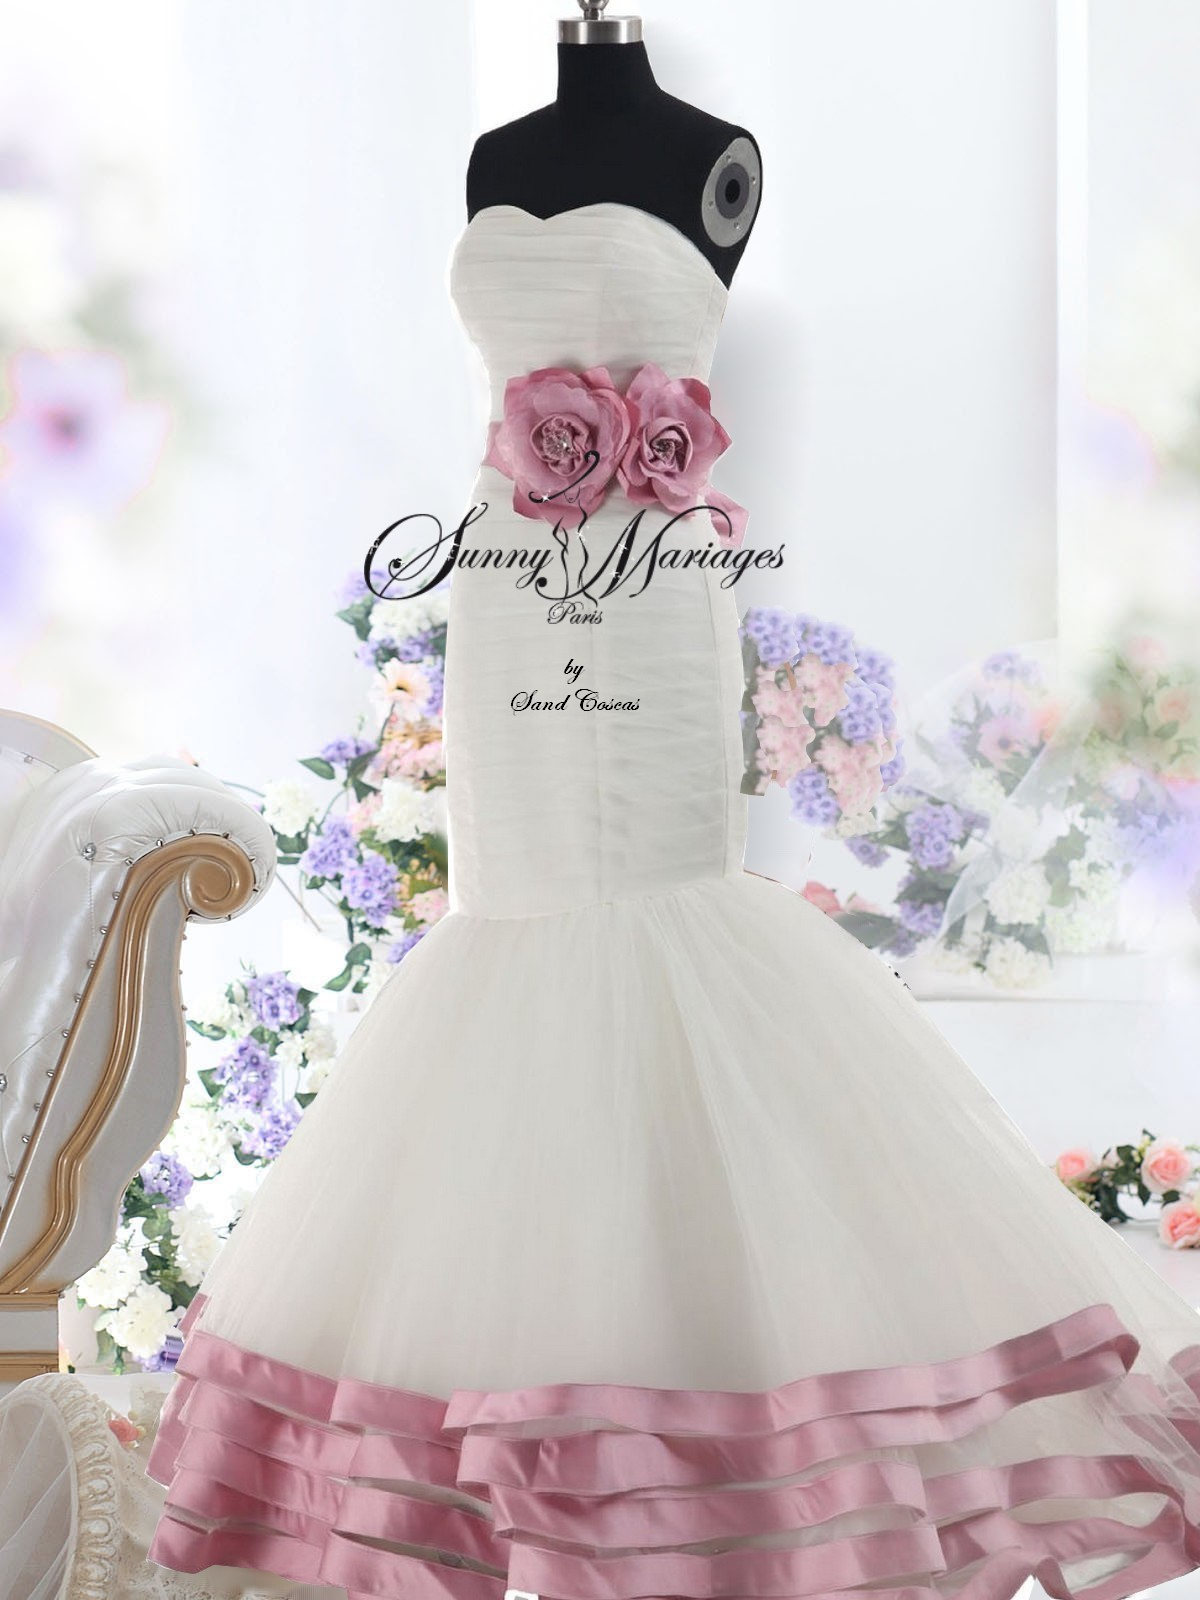 robe de mariee pas chere rose et blanche forme sirene sunny mariage. Black Bedroom Furniture Sets. Home Design Ideas